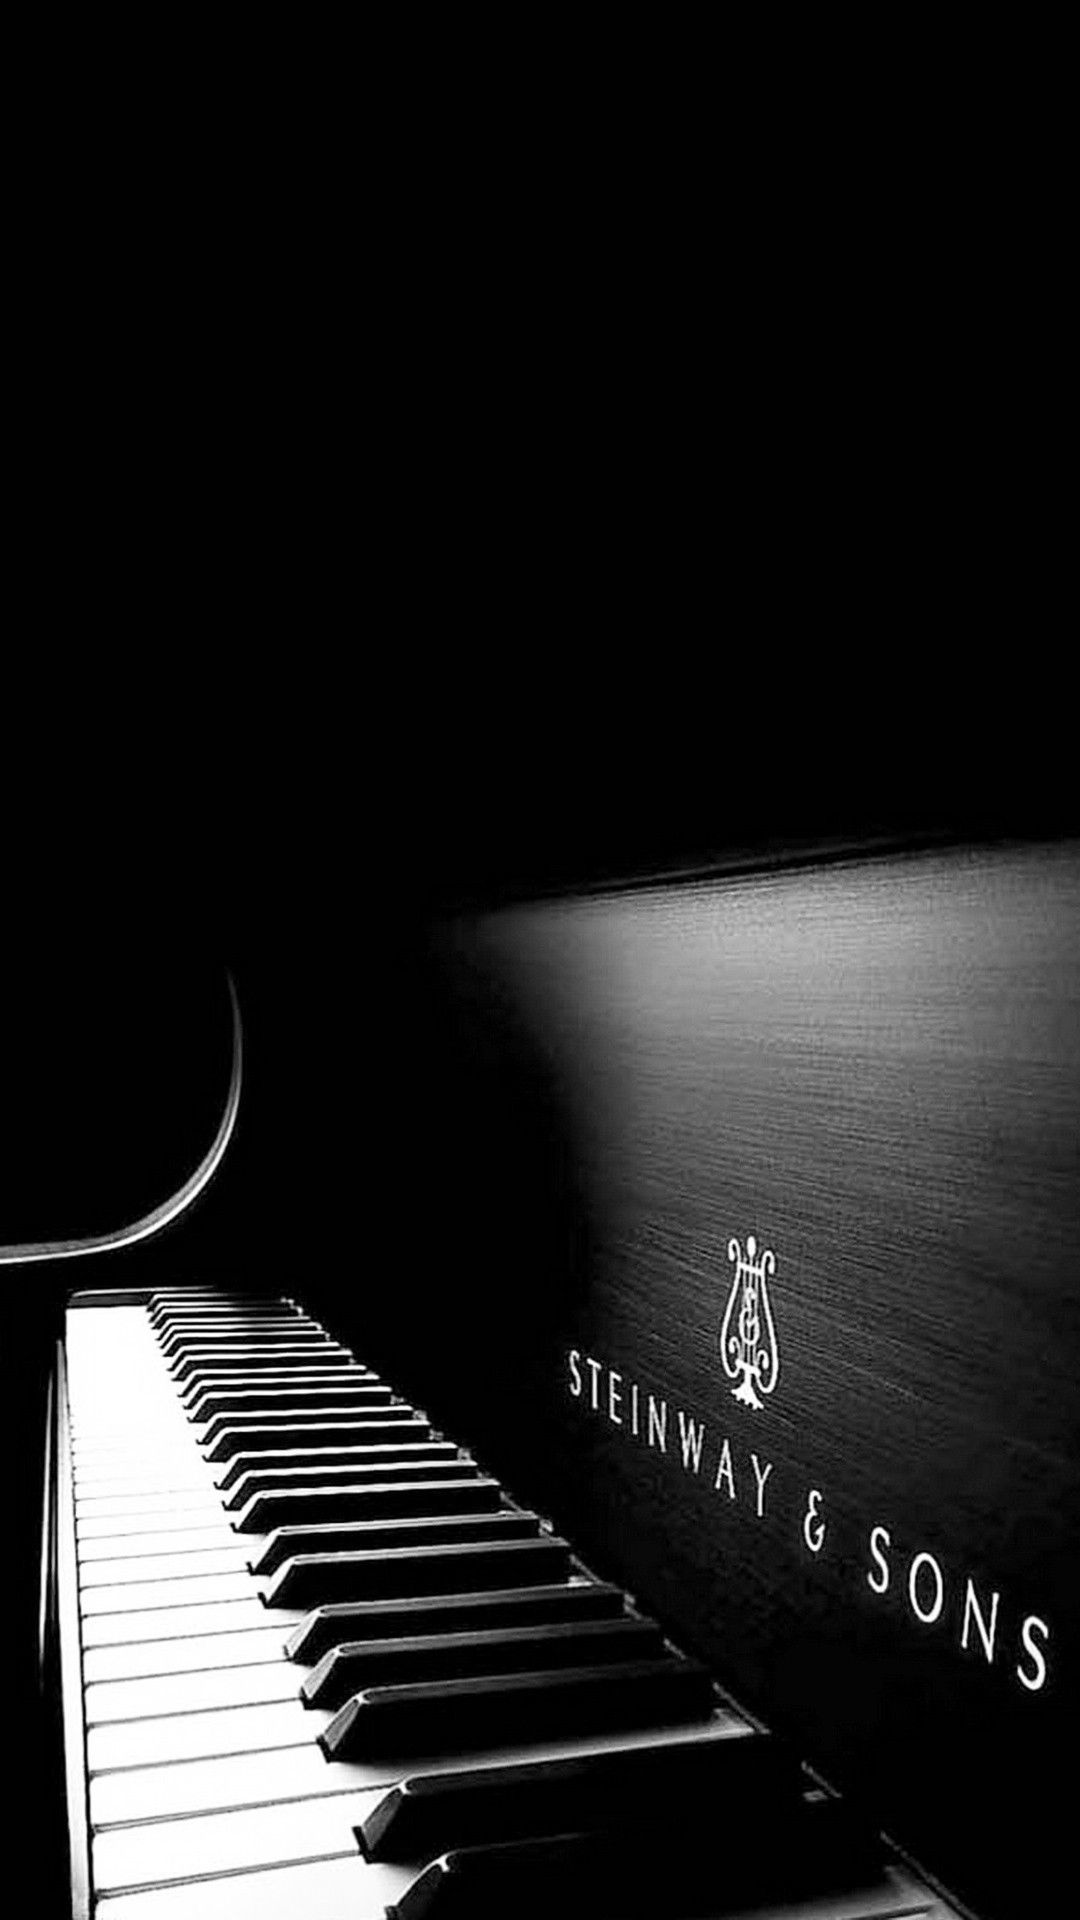 Steinway And Sons Black Piano Smartphone Wallpaper And Lockscreen